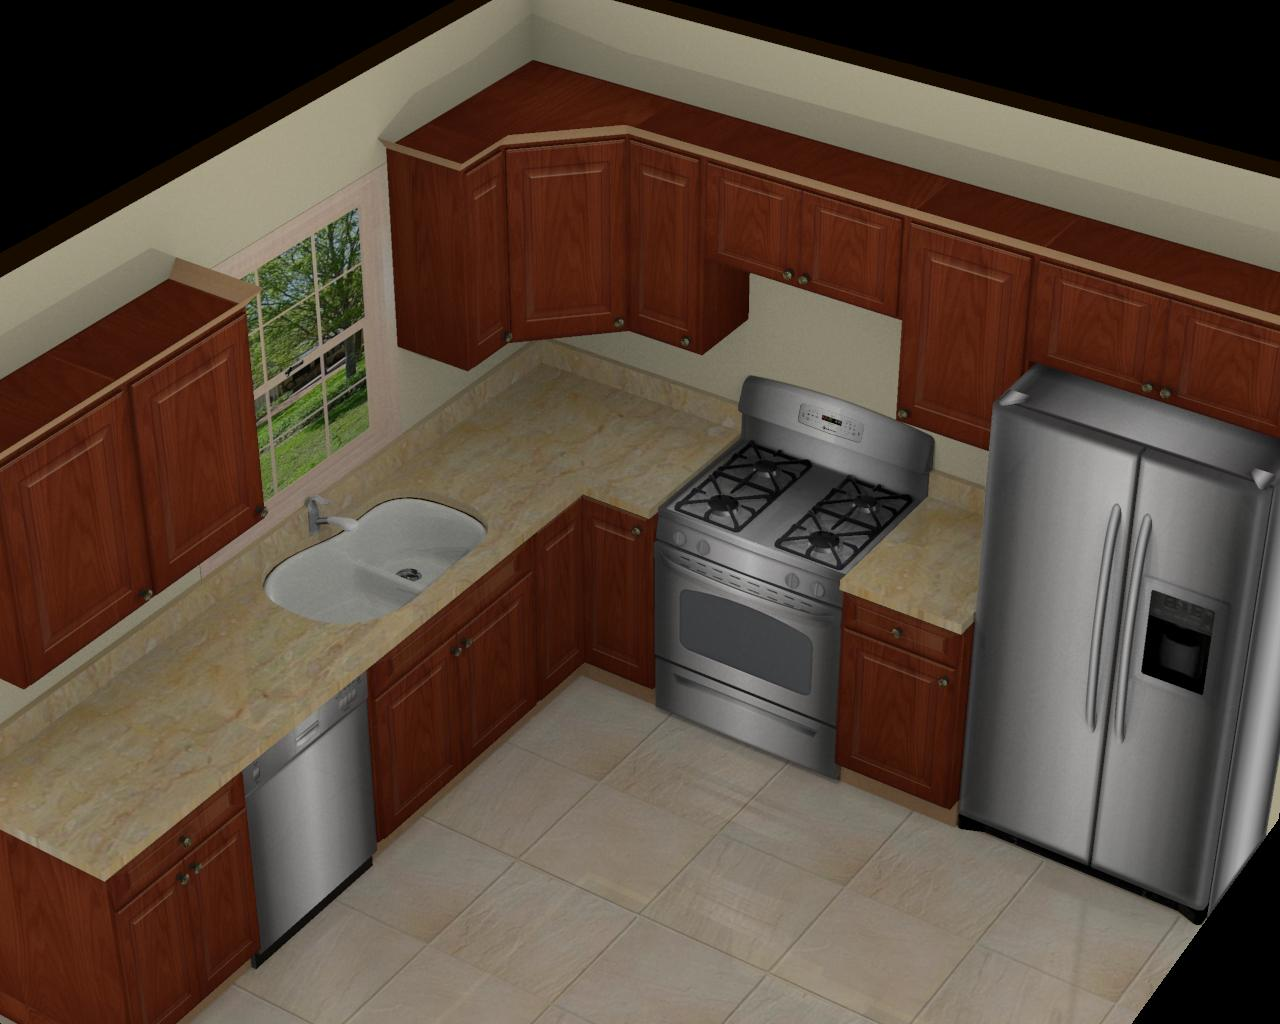 Foundation dezin decor 3d kitchen model design for 10x10 kitchen ideas